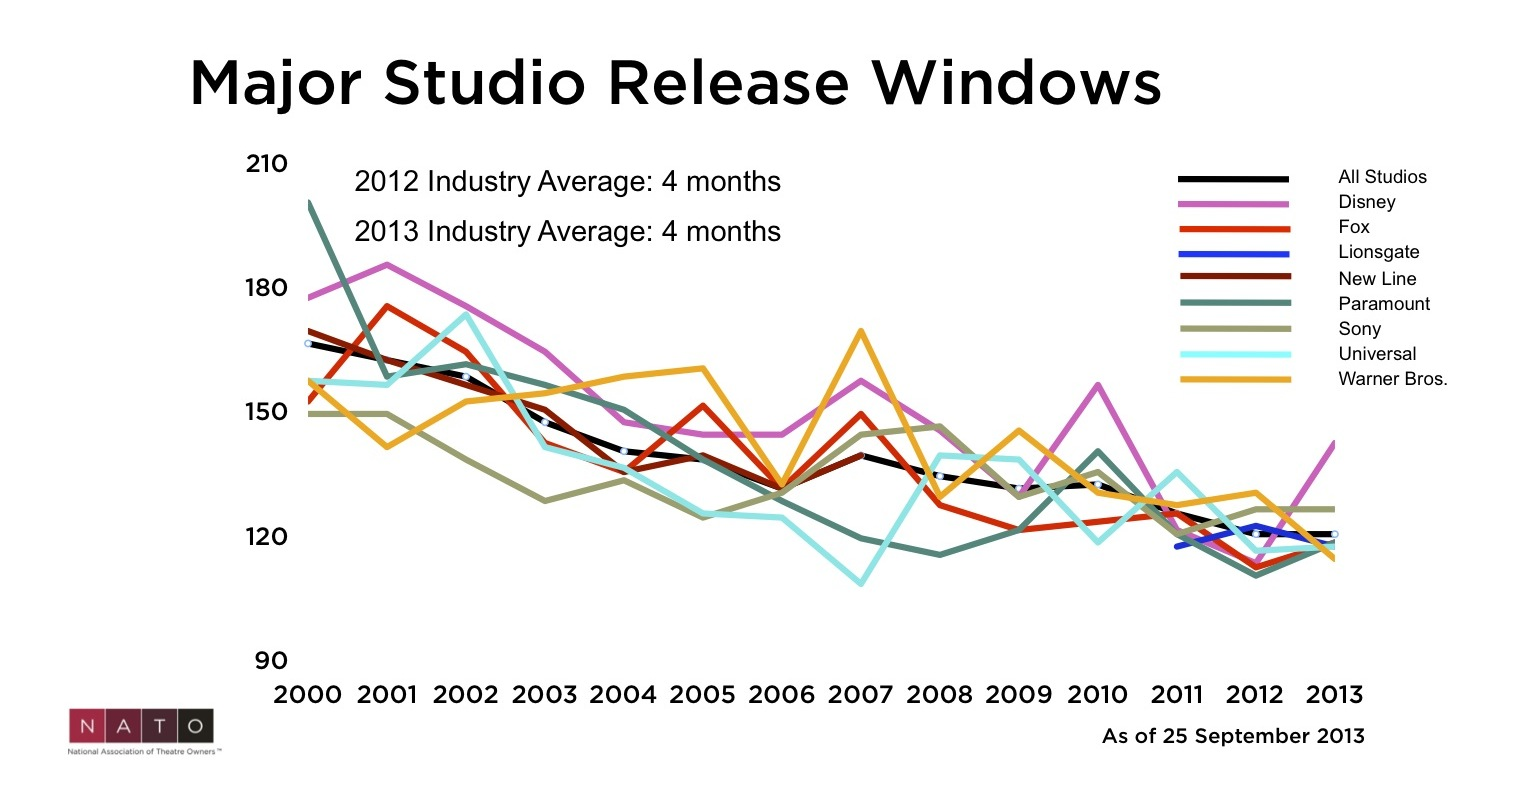 Major Studio Release Windows Graph